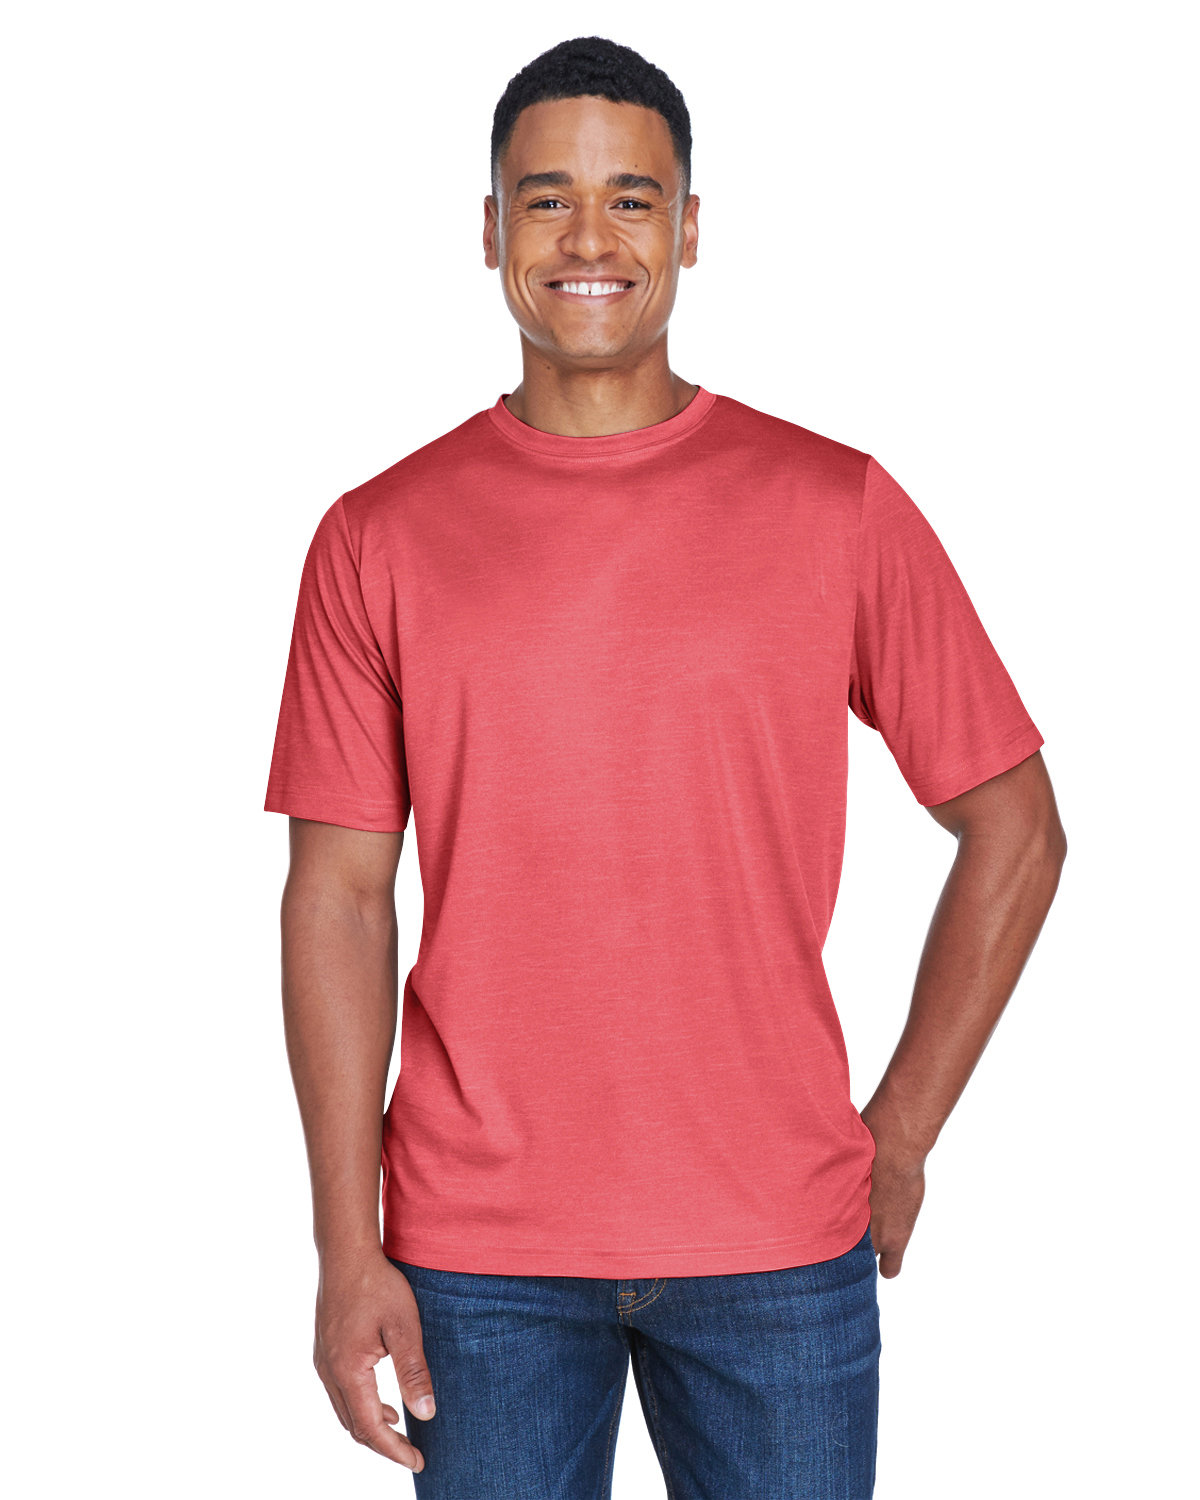 Team 365 Men's Sonic Heather Performance T-Shirt SP RED HEATHER